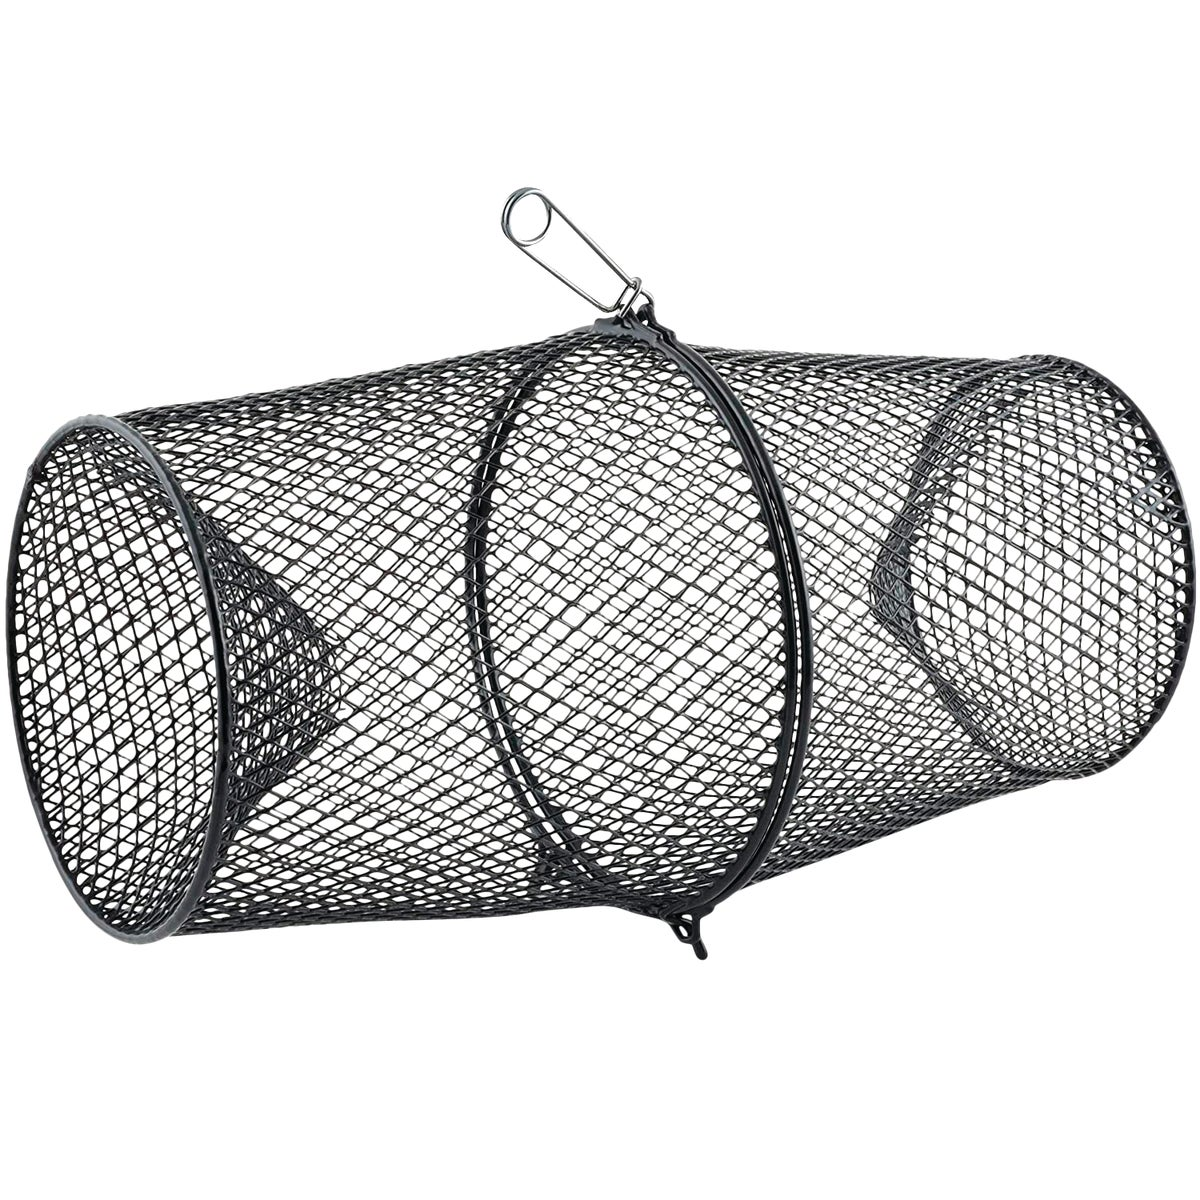 WIRE MINNOW TRAP